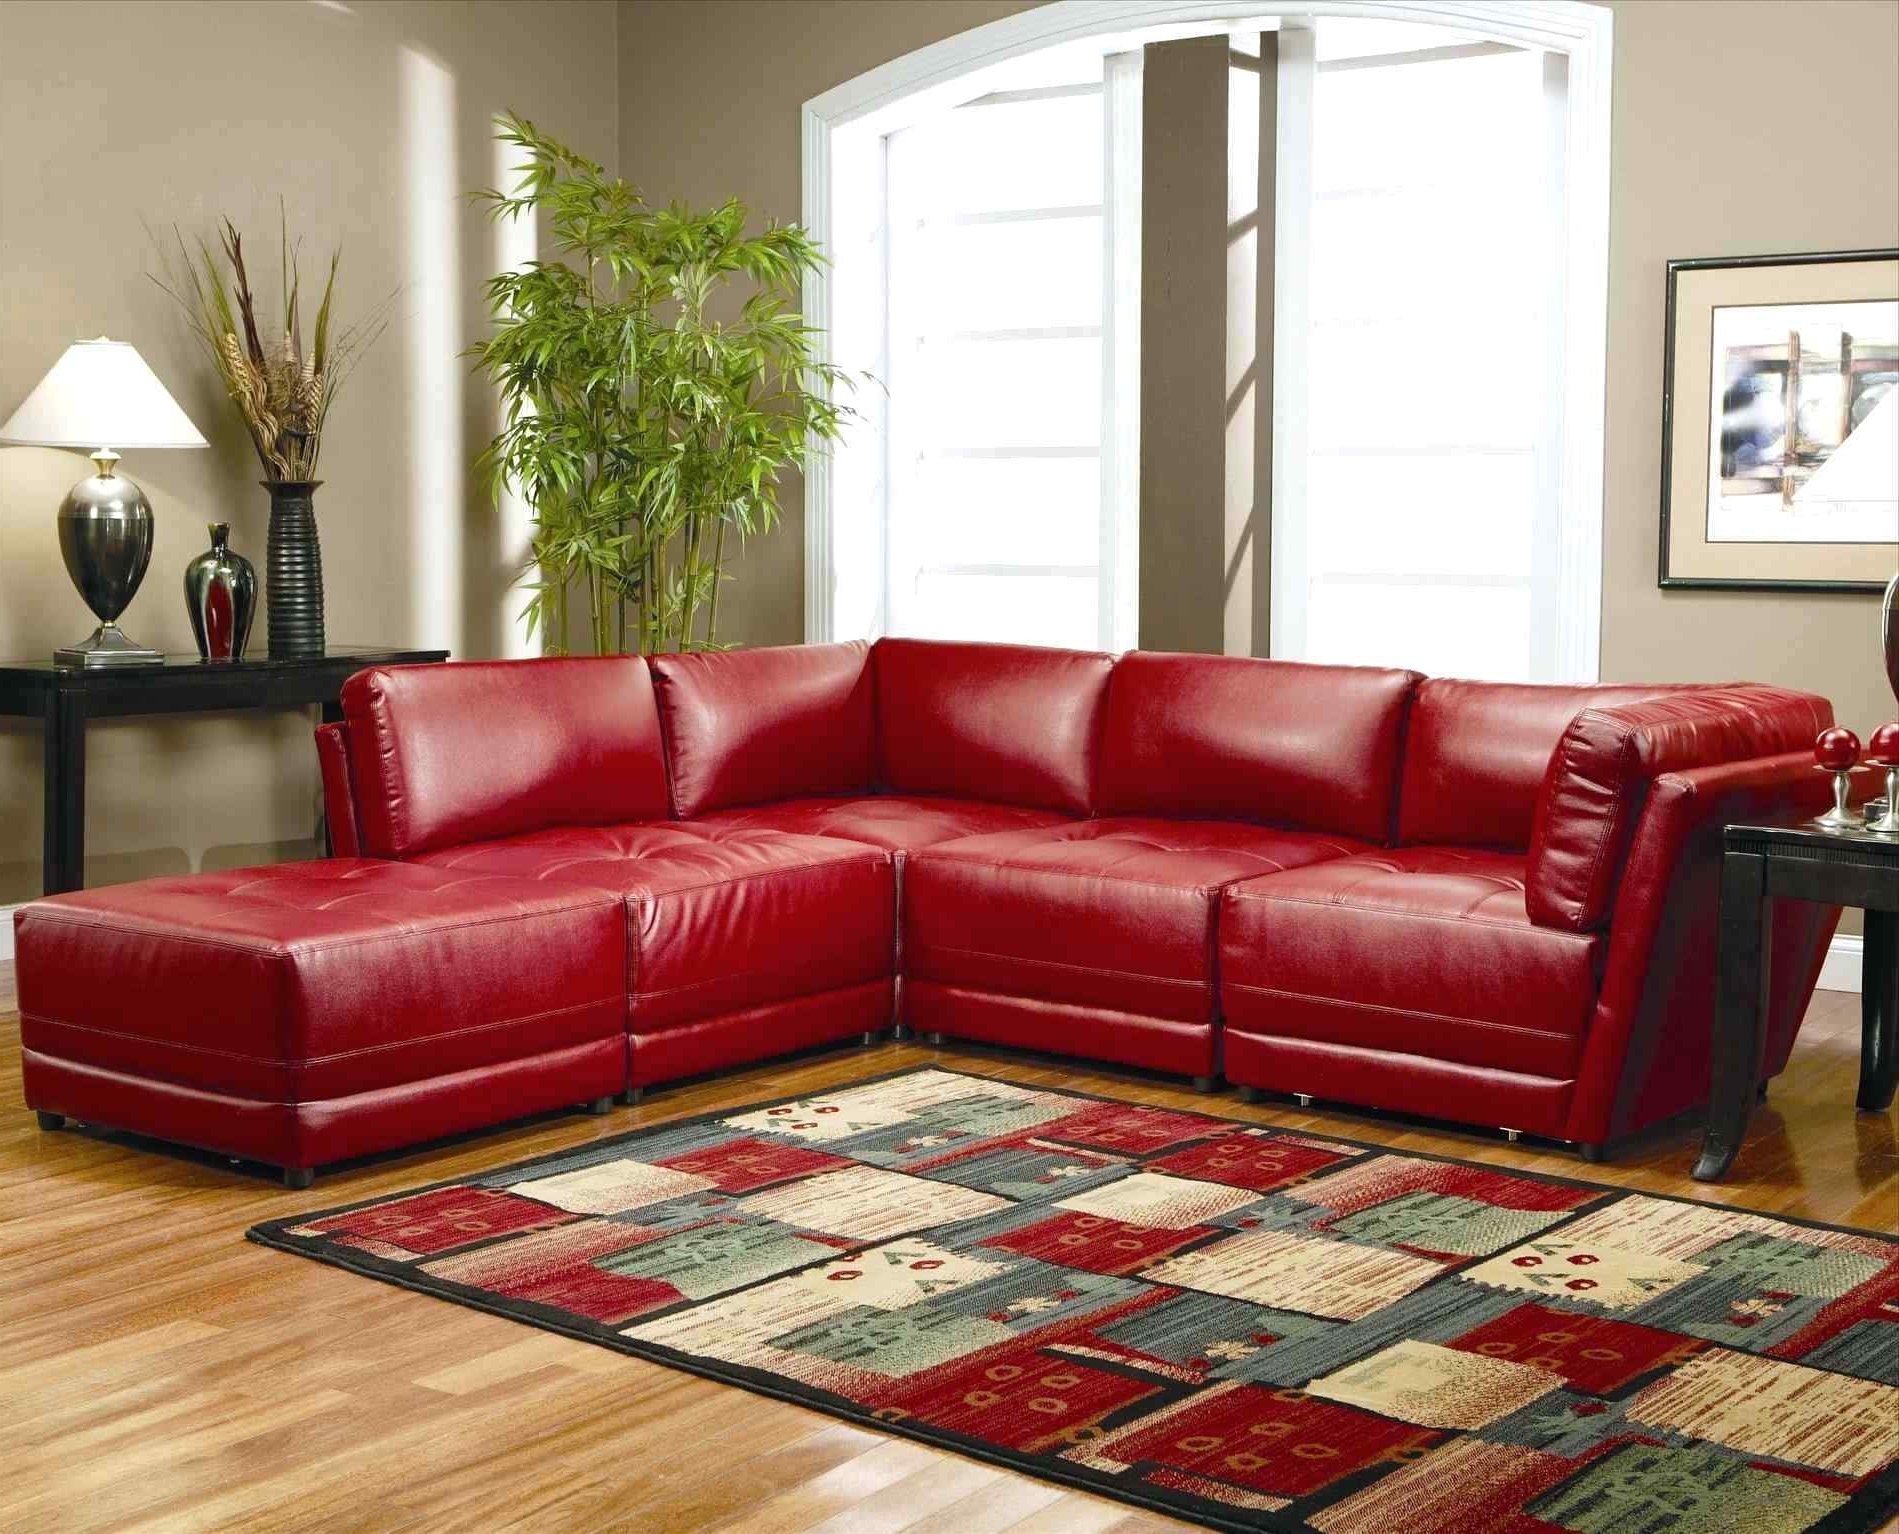 Red Leather Couches For Living Room Pertaining To Favorite Stunning Red Leather Couch Living Room Ikea Klippan U (View 18 of 20)